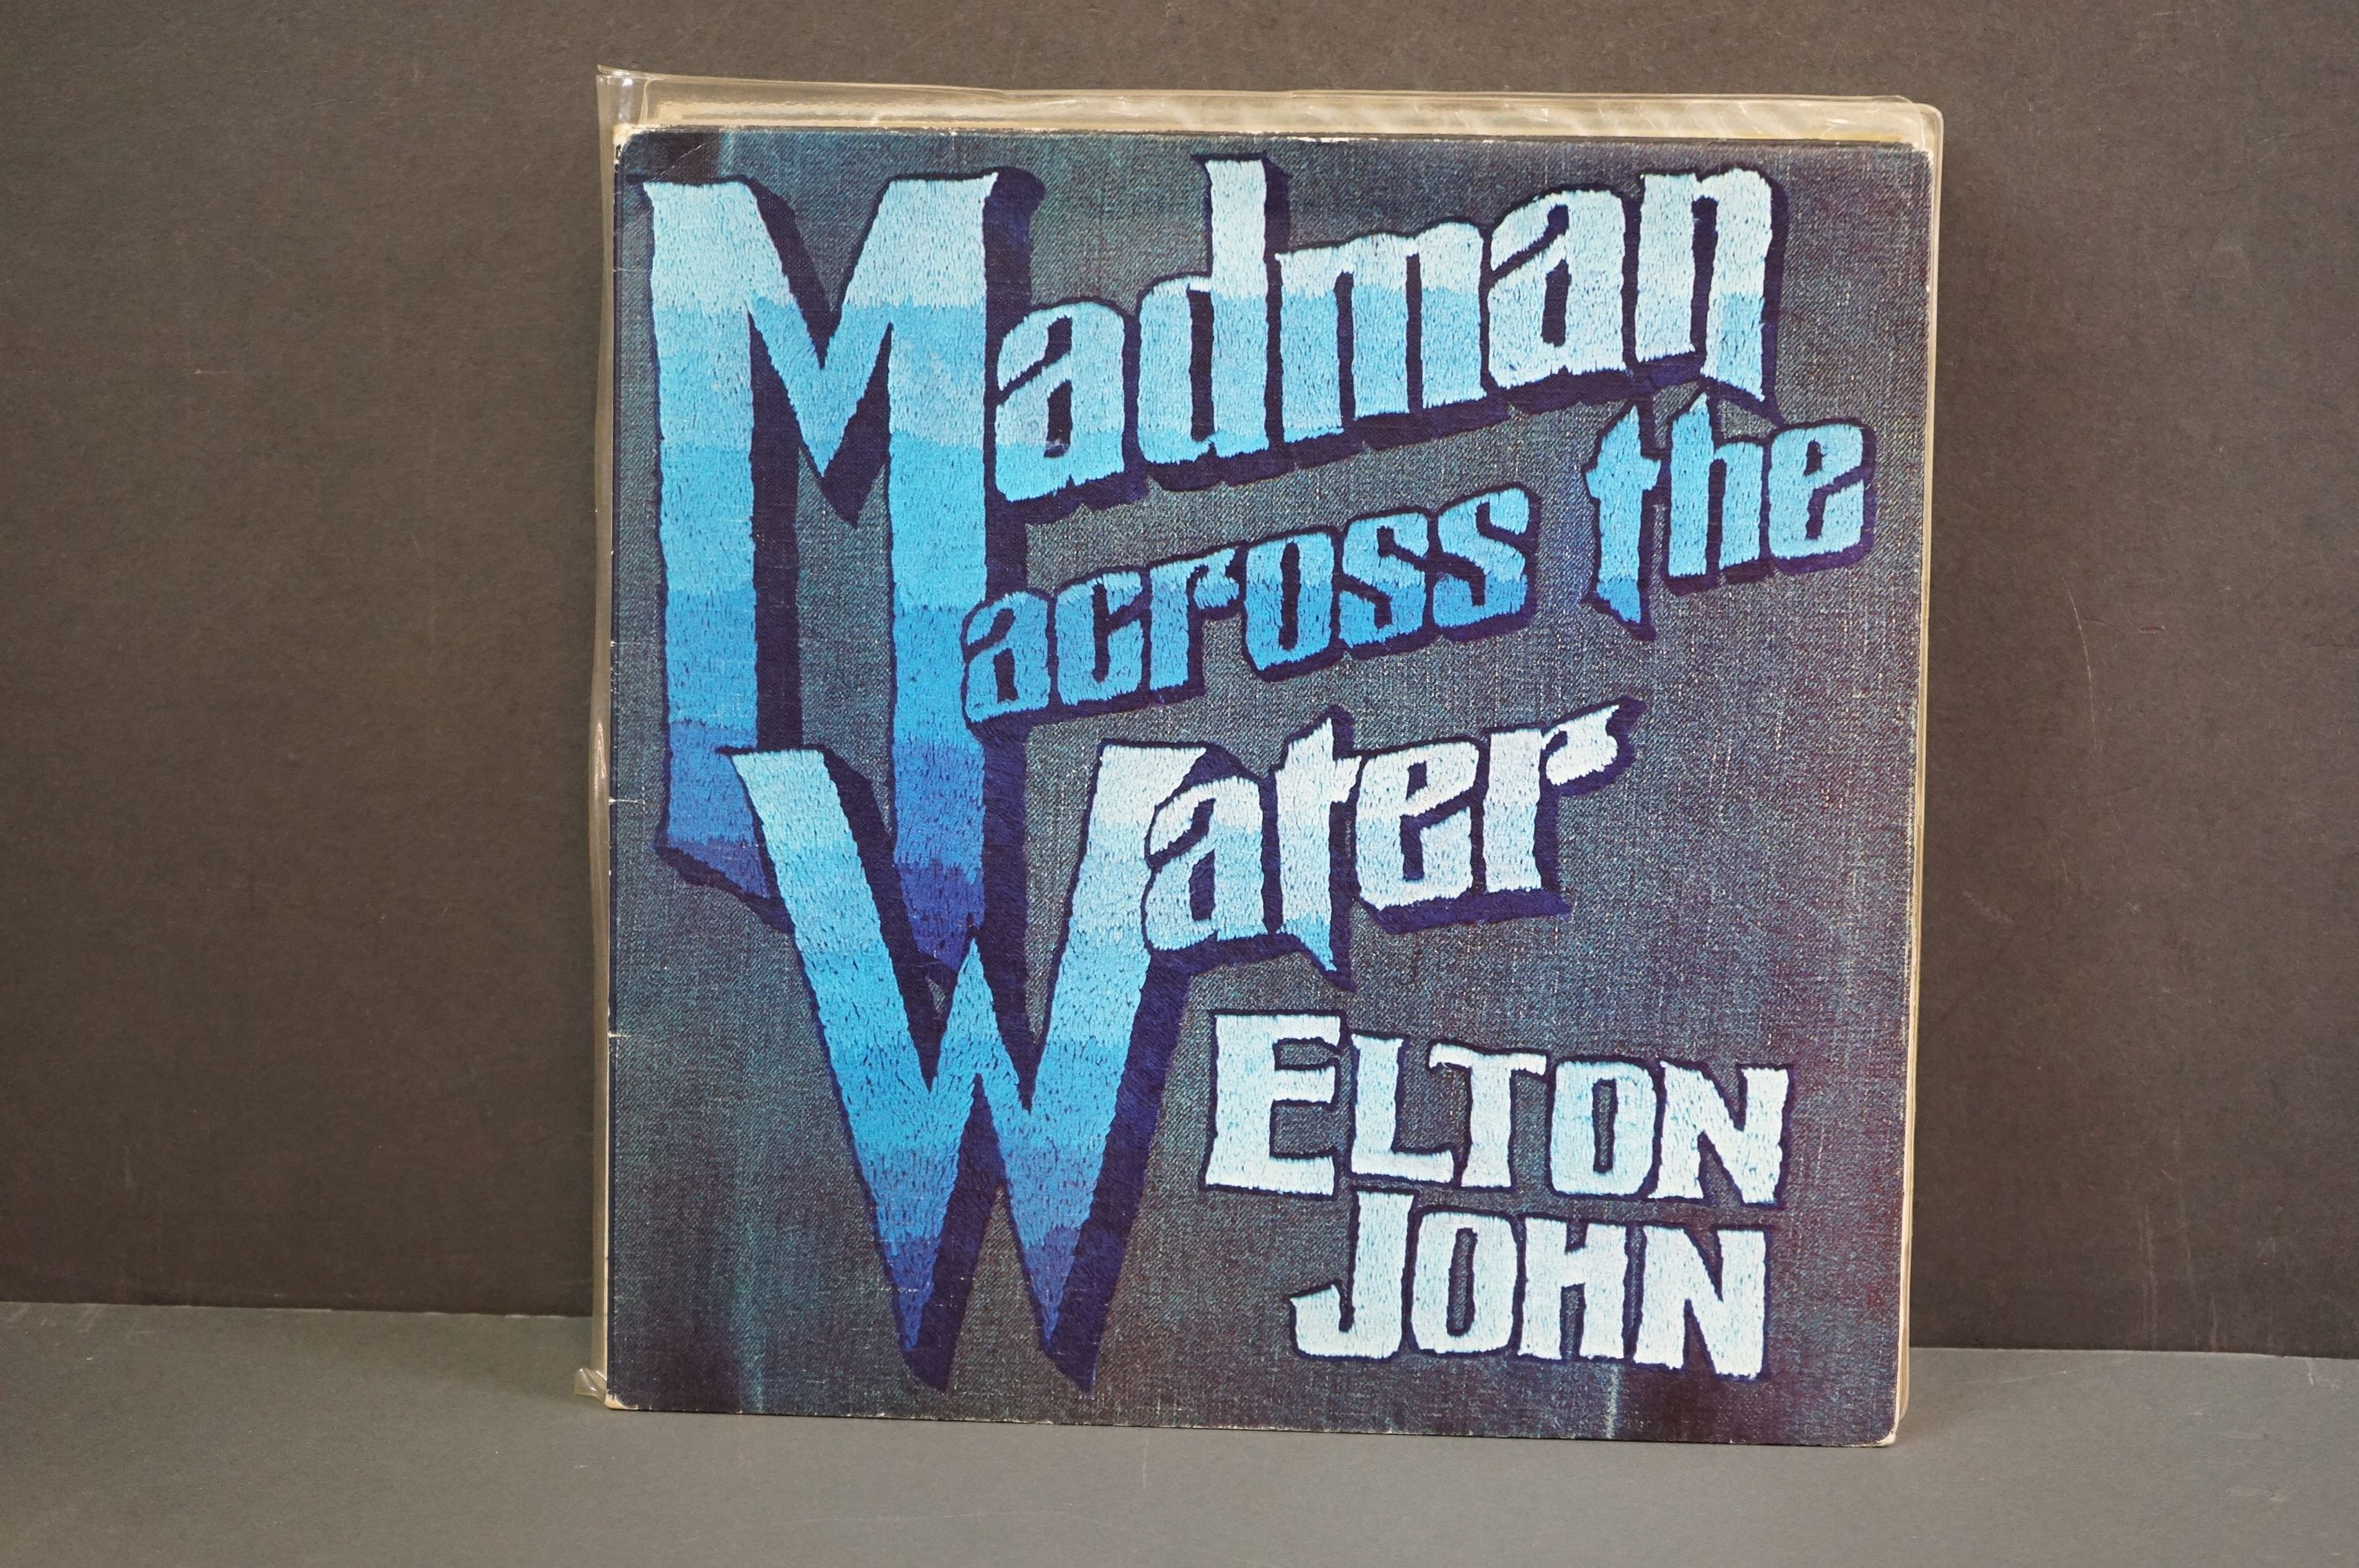 Vinyl - 16 Elton John LPs to include A Single Man, Blue Moves, Greatest Hits, Goodbye Yellow Brick - Image 8 of 16